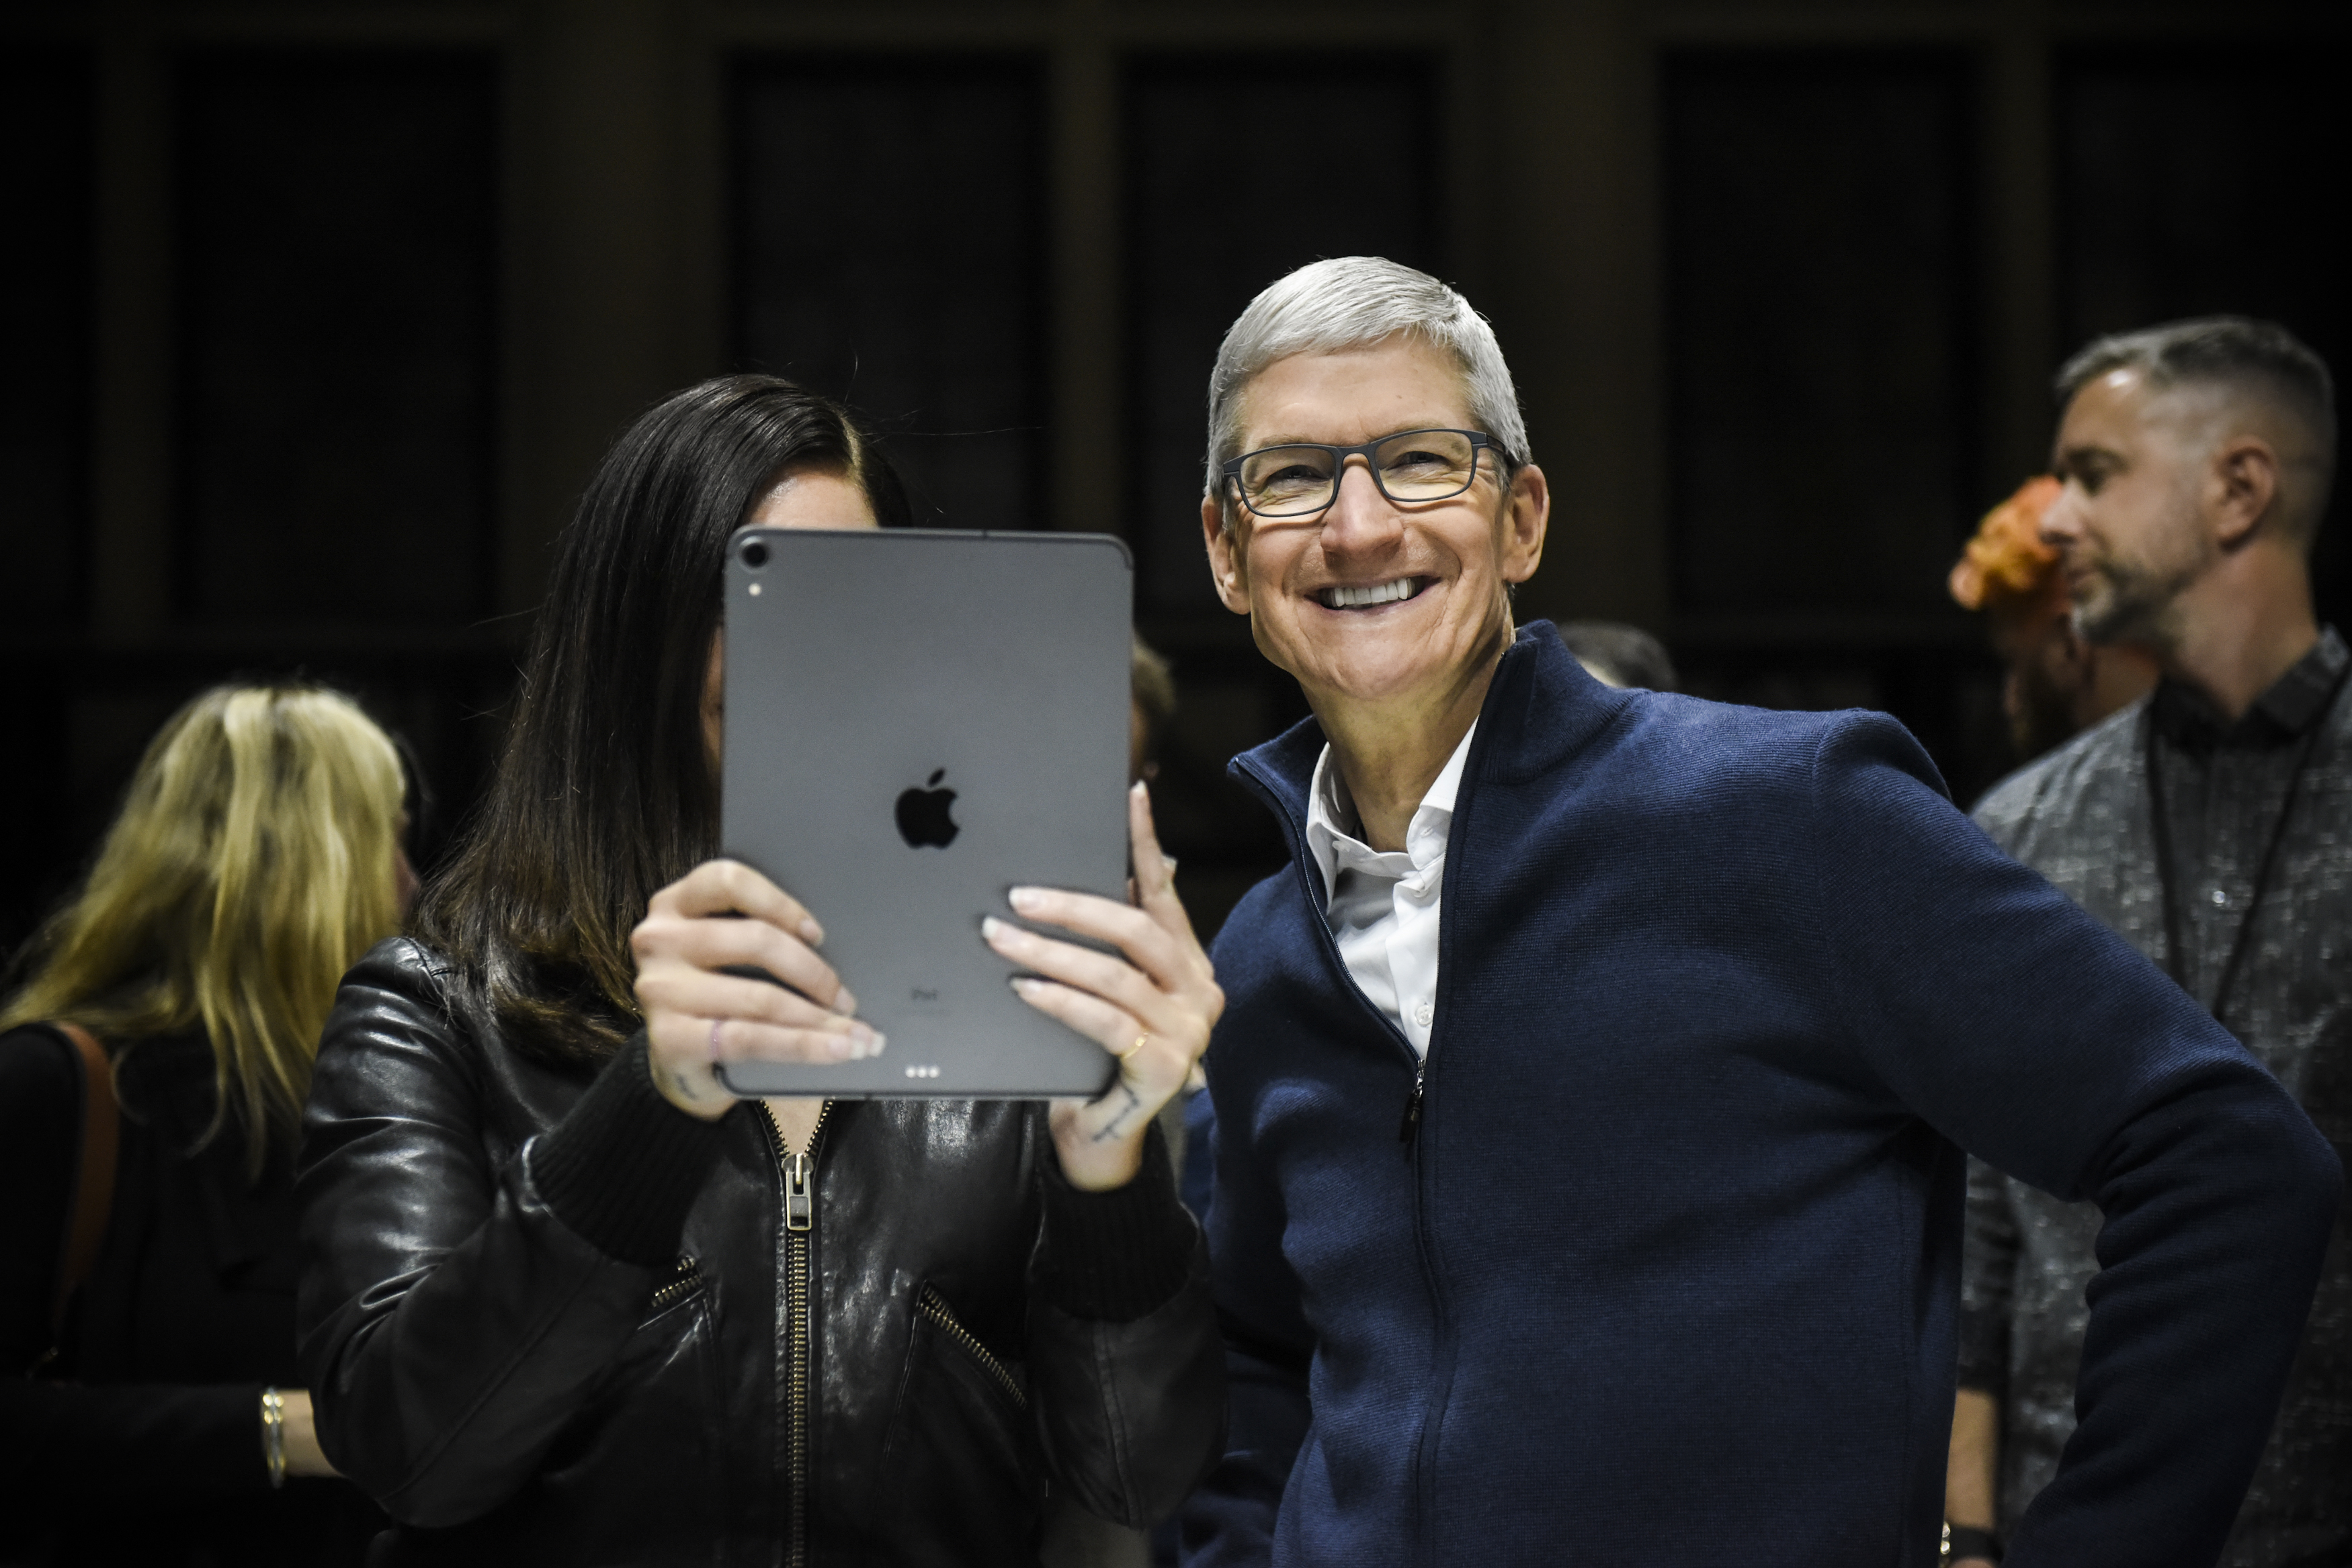 Apple CEO Tim Cook smiles beside singer Lana Del Rey as she holds up an iPad.